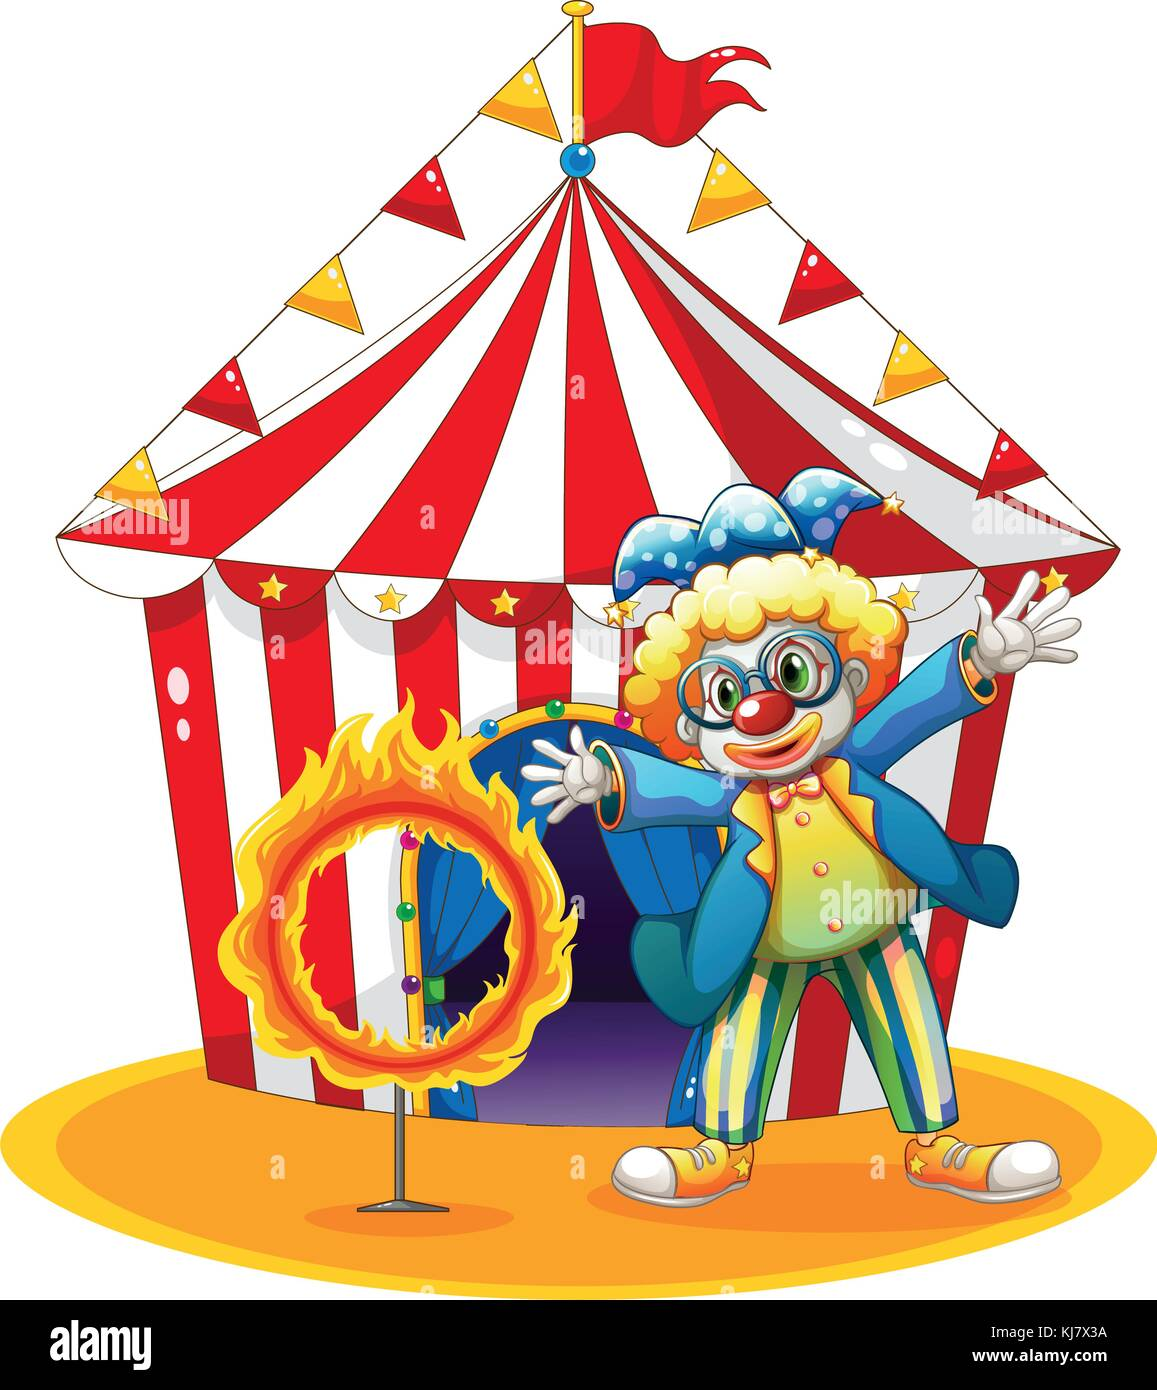 Illustration of a circus tent at the back of the clown with a ring of fire on a white background - Stock Image